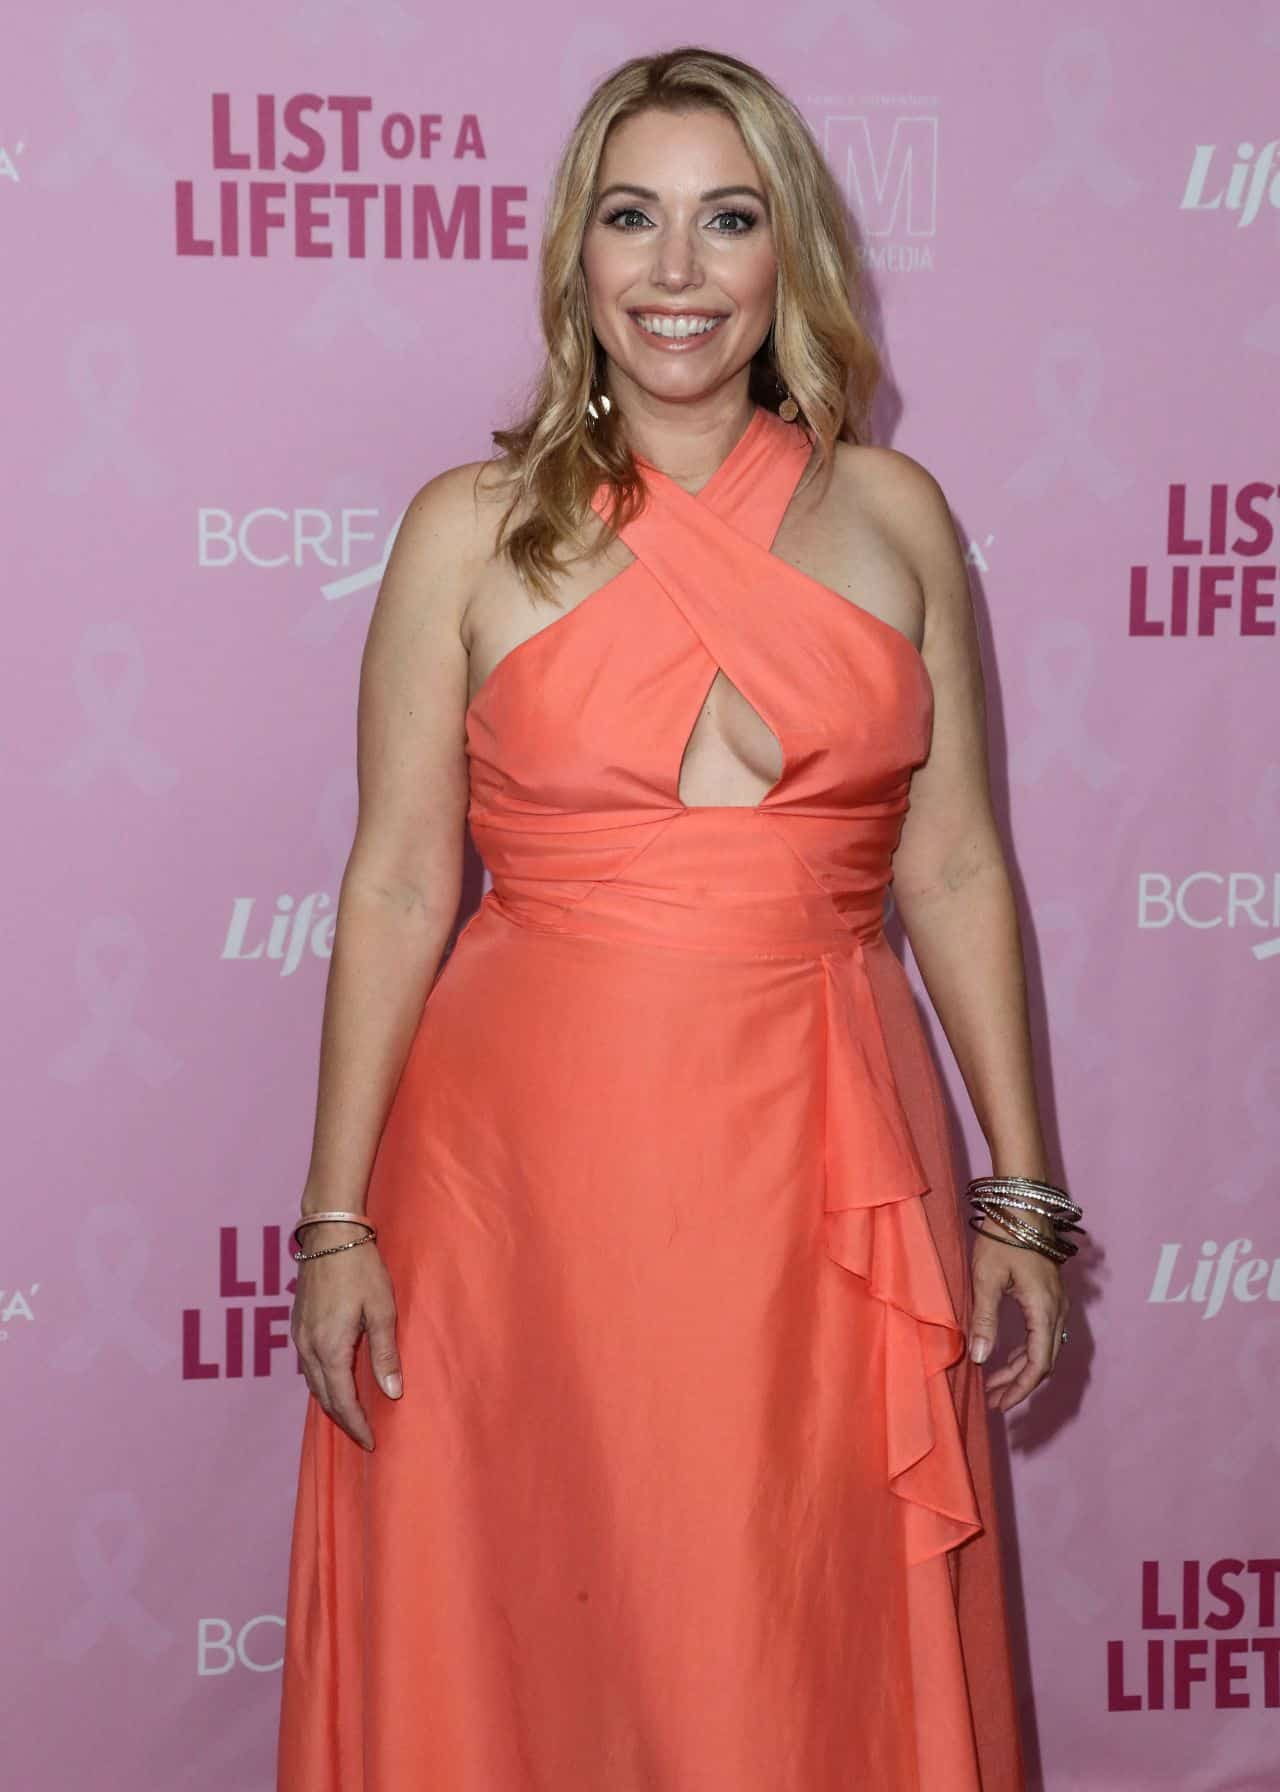 """Autumn Federici Attended the """"List Of A Lifetime"""" Movie Premiere in LA"""